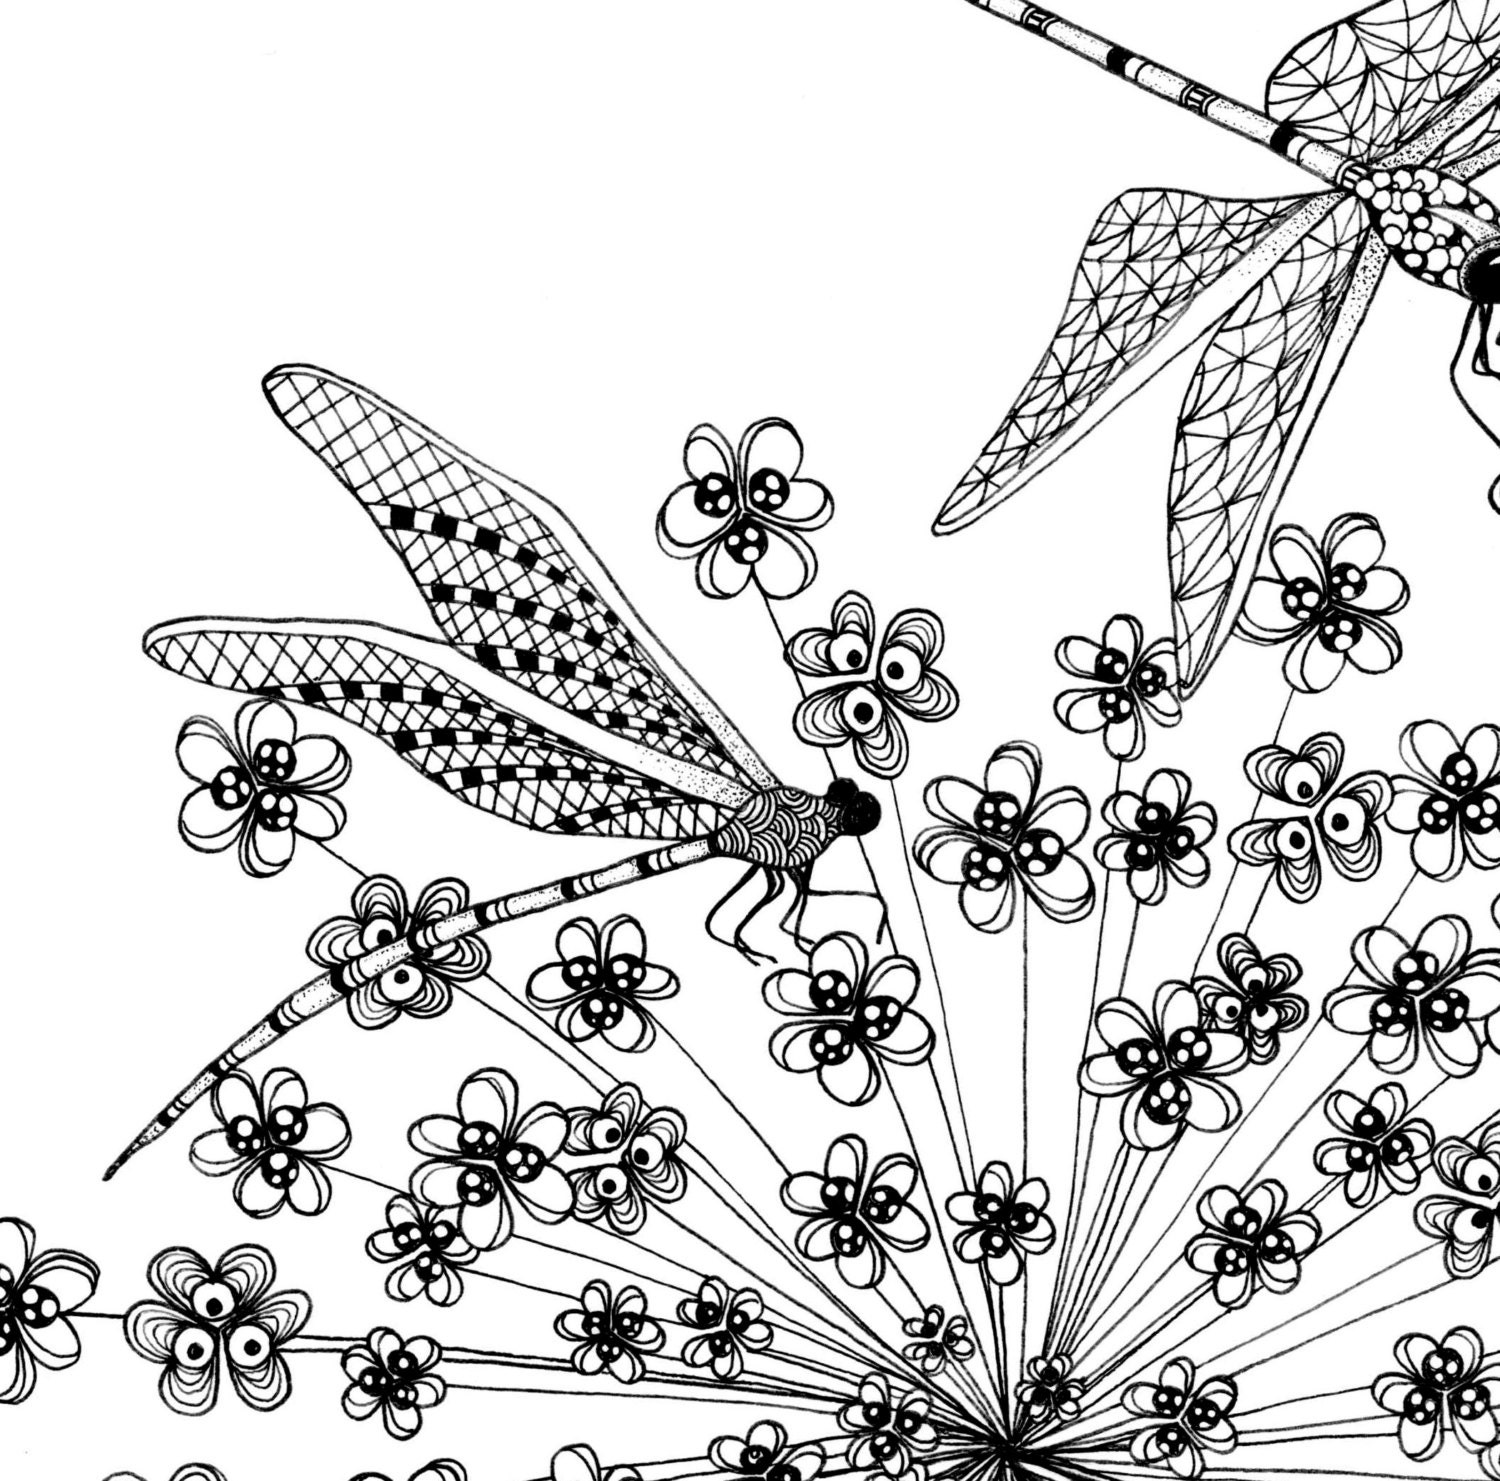 flowers and dragonflies coloring pages | Printable coloring pages of a flower illustration & dragonfly